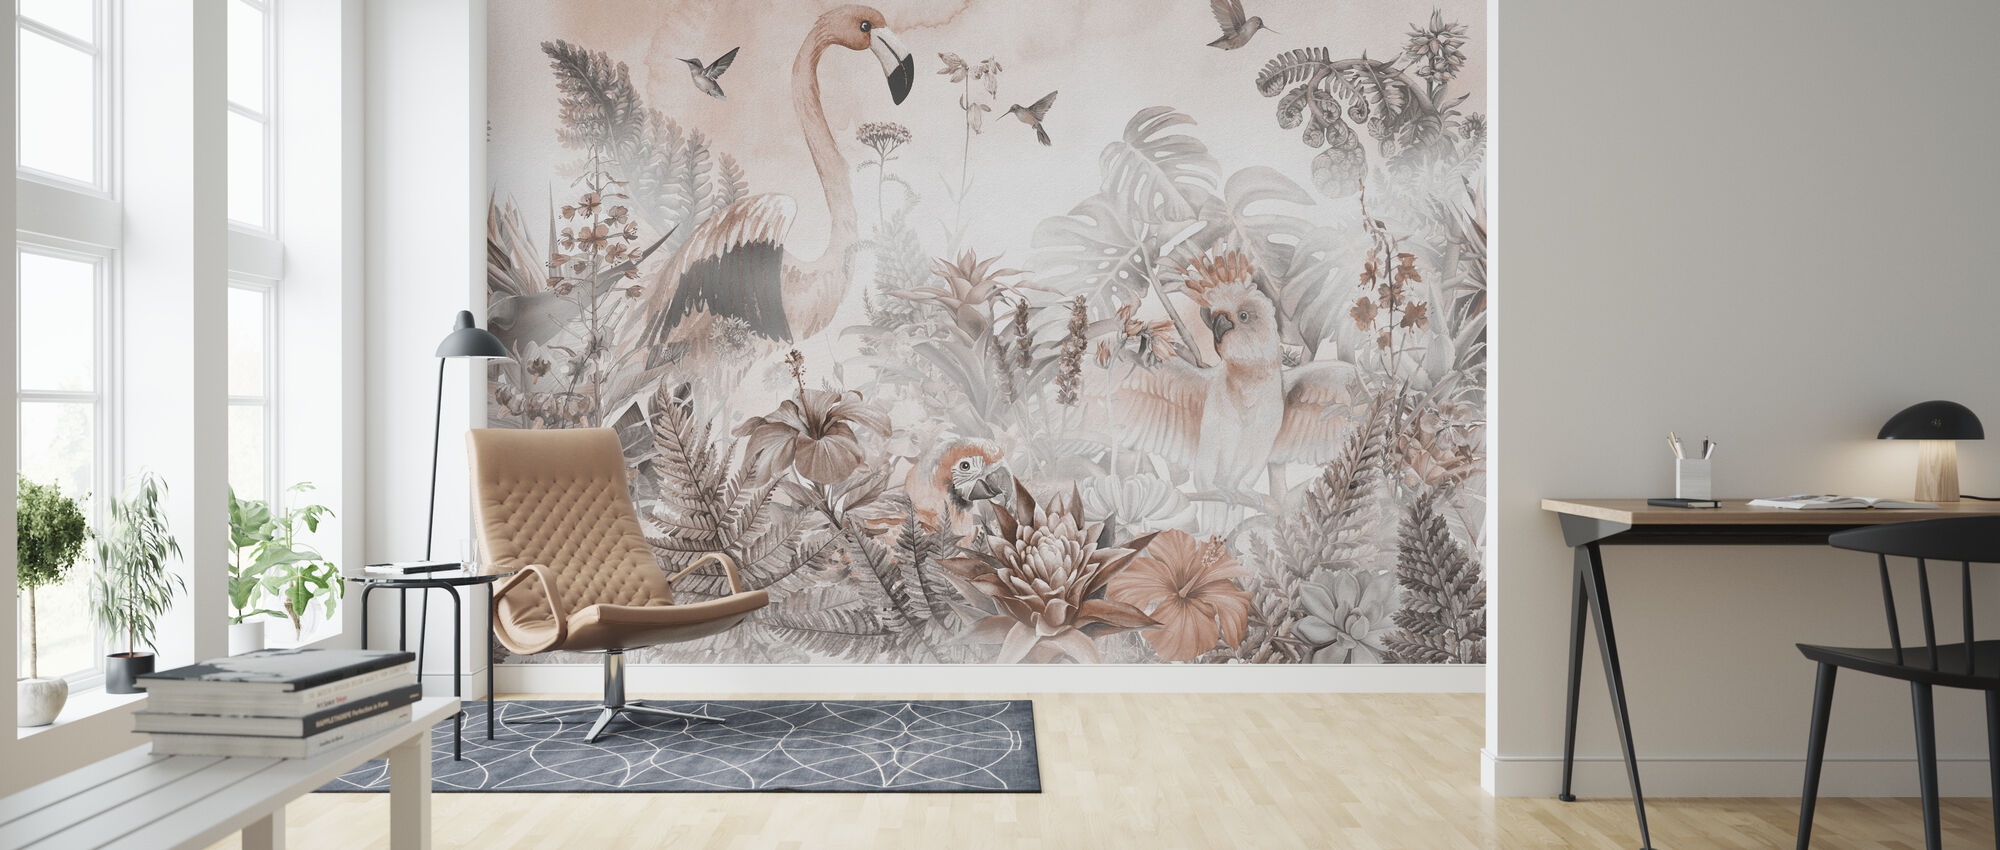 Giant Flamingo - Peach - Wallpaper - Living Room